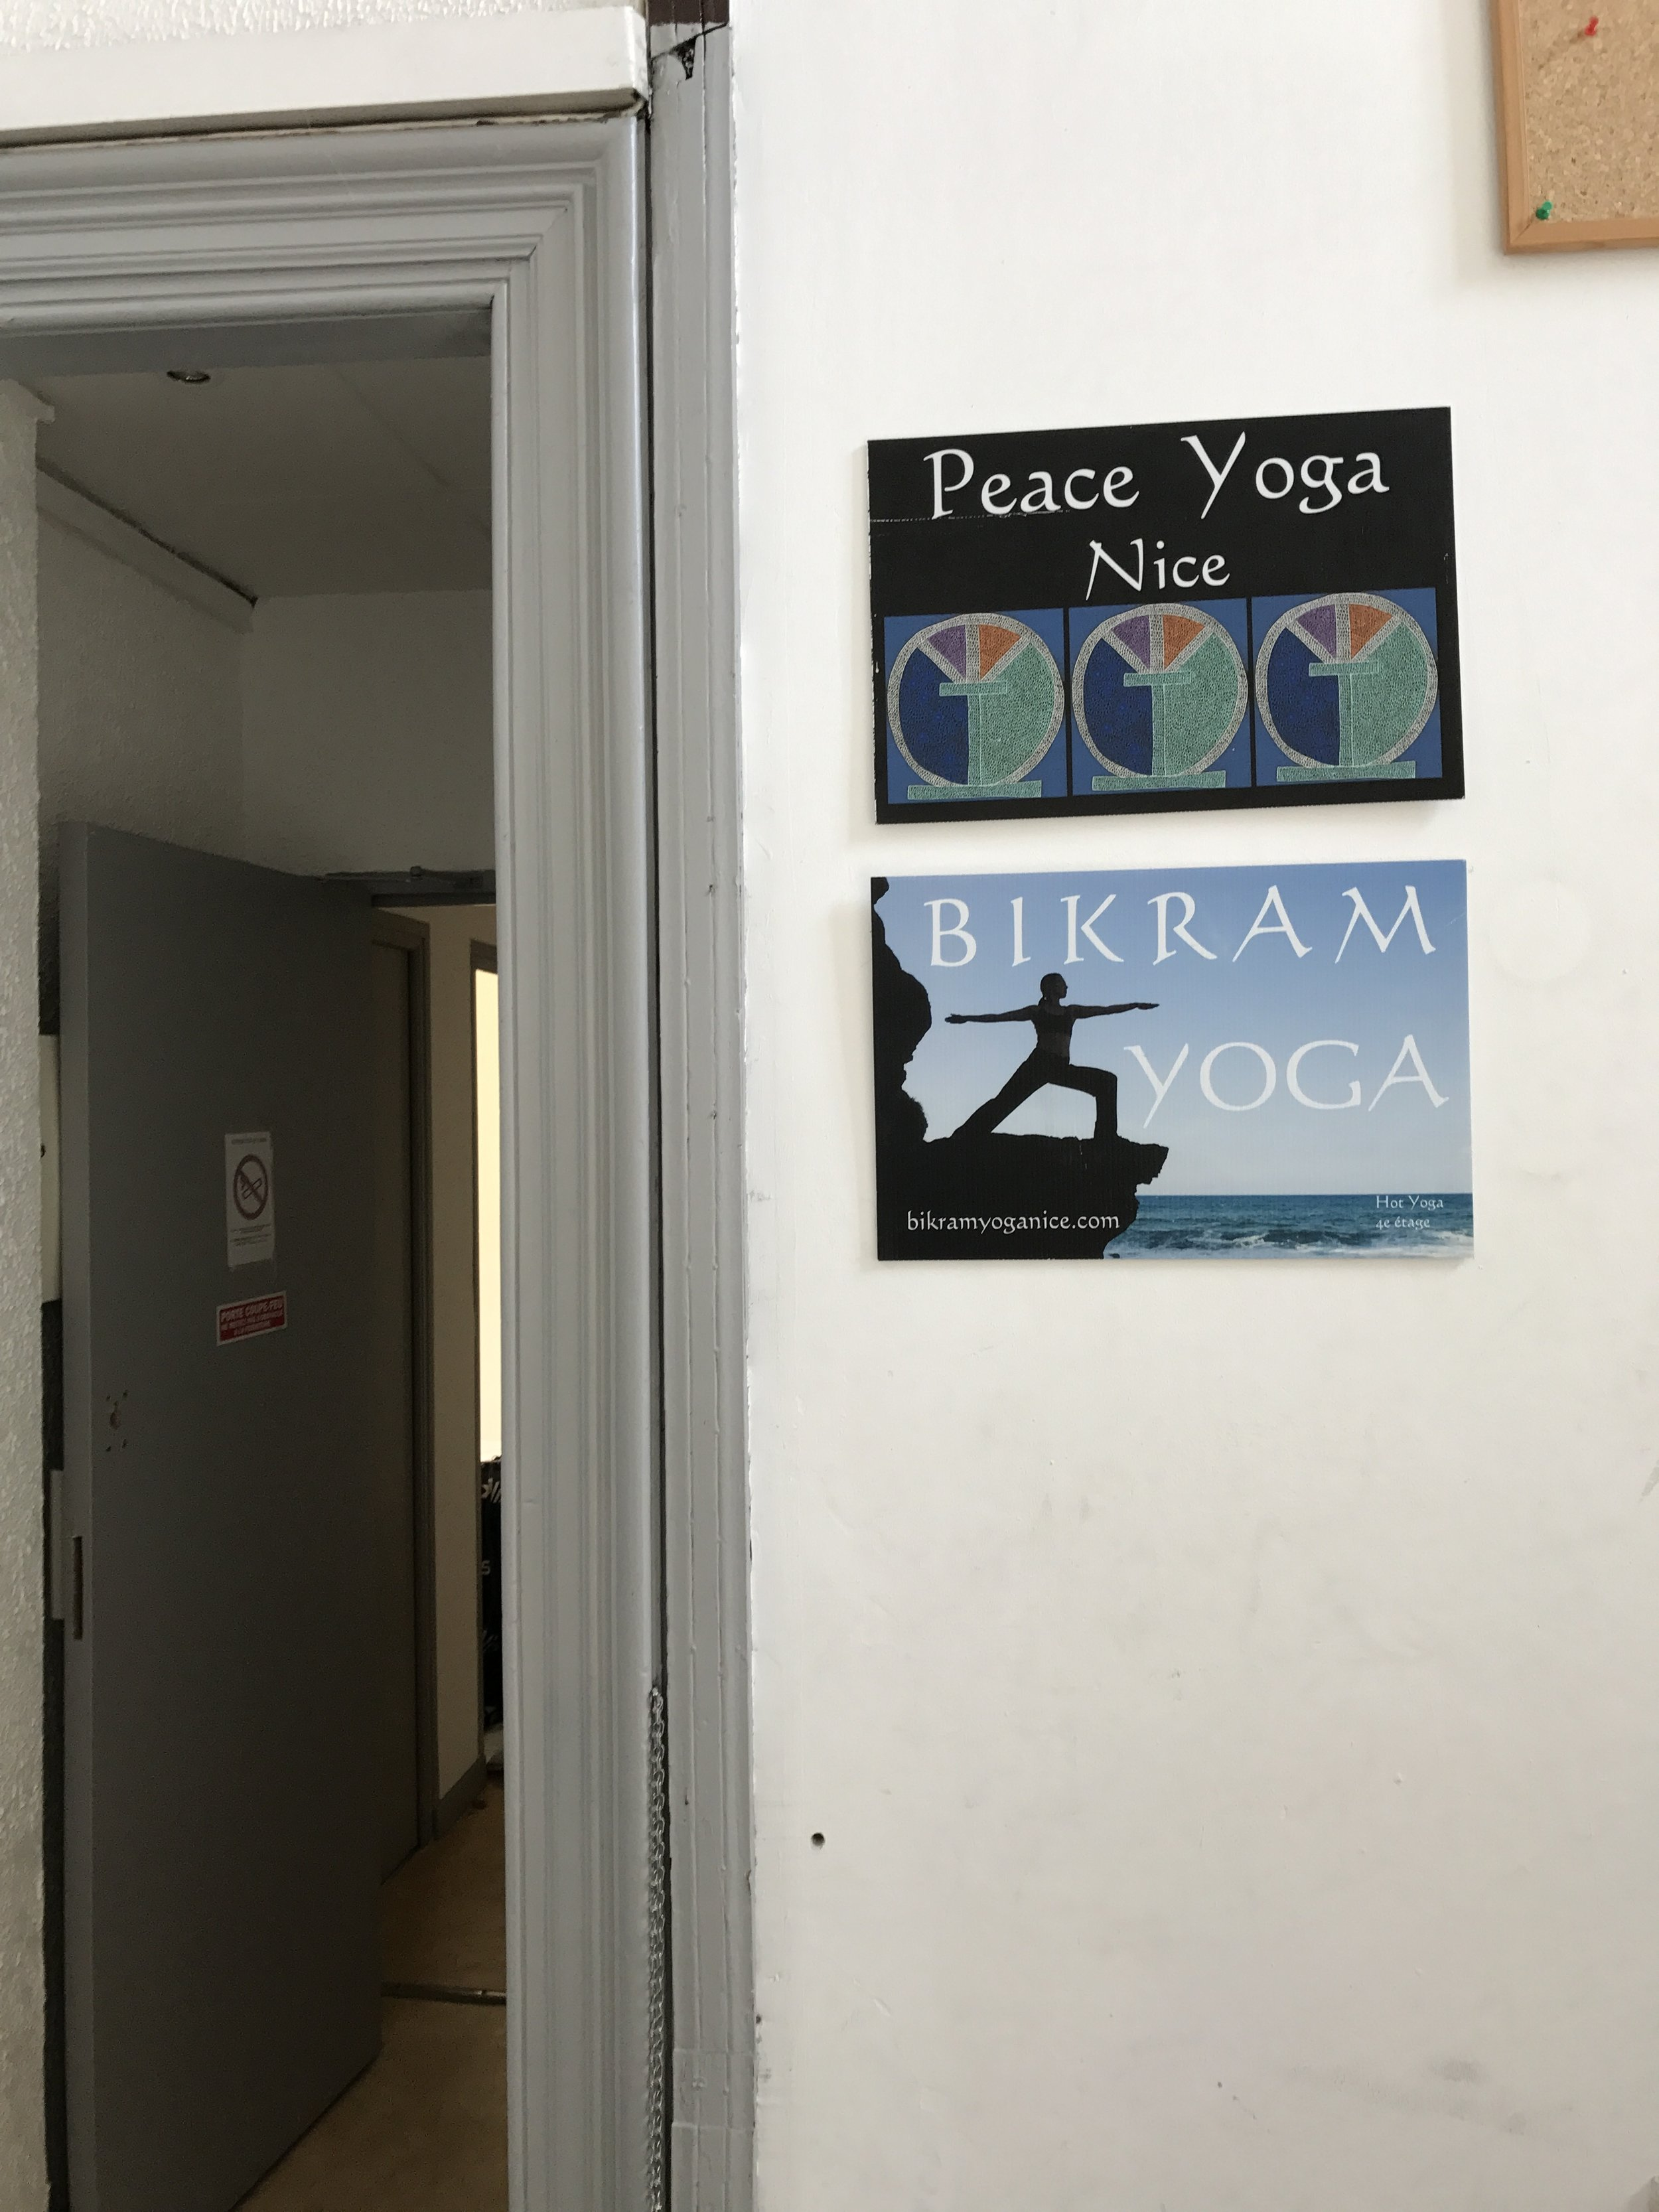 I cherished our two days on the French Riviera (especially our day with no driving!) The highlight was finding this Bikram Yoga Studio on the 4th floor of a hostel. The class was done in both English and French and as a Yogi I loved the fact that I was halfway across the world and had immediate connection and love from people I had never met because of yoga. Look them up when you get to town, they do have mats and towels available for rent!